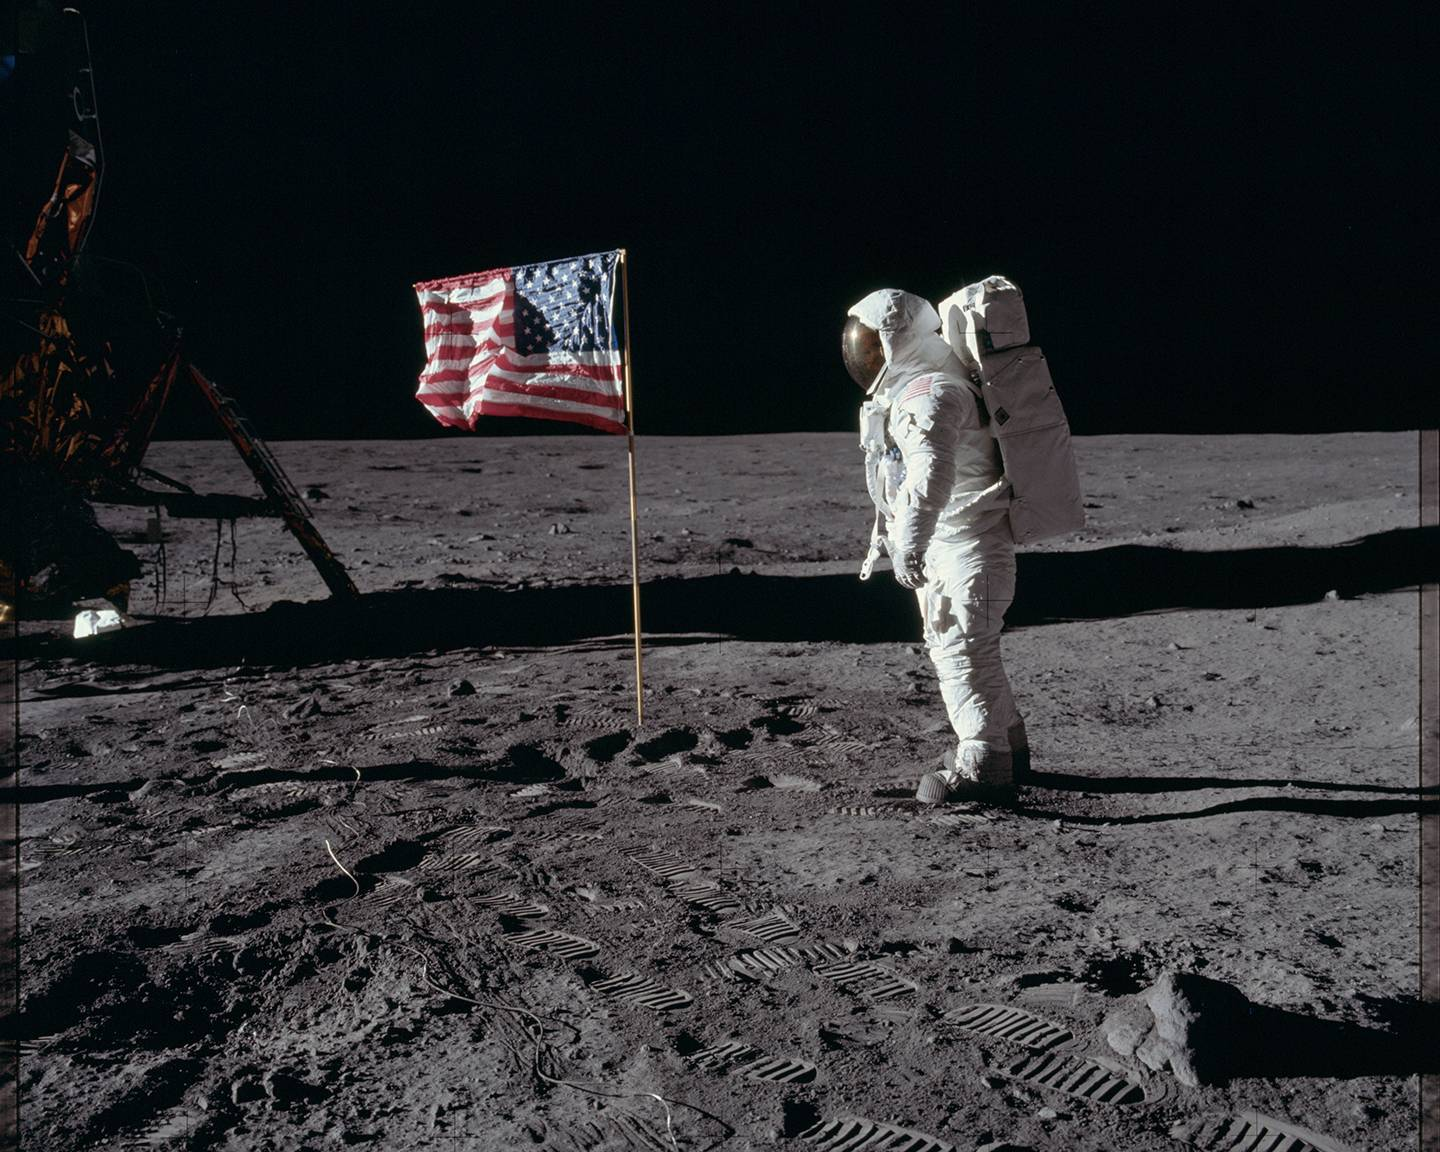 Buzz Aldrin salutes the American flag on the moon